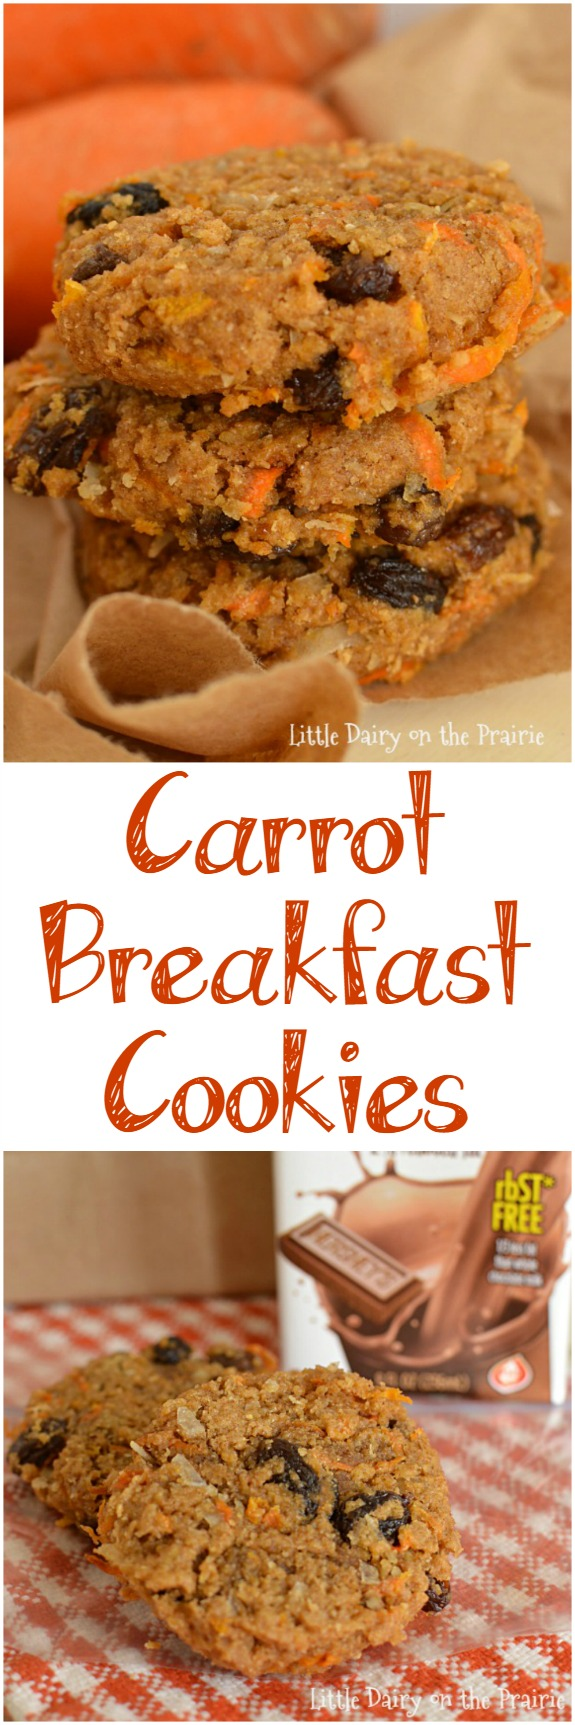 Carrot Breakfast Cookies make a super yummy and healthy, on the go breakfast! They freeze really well too! Little Dairy on the Prairie